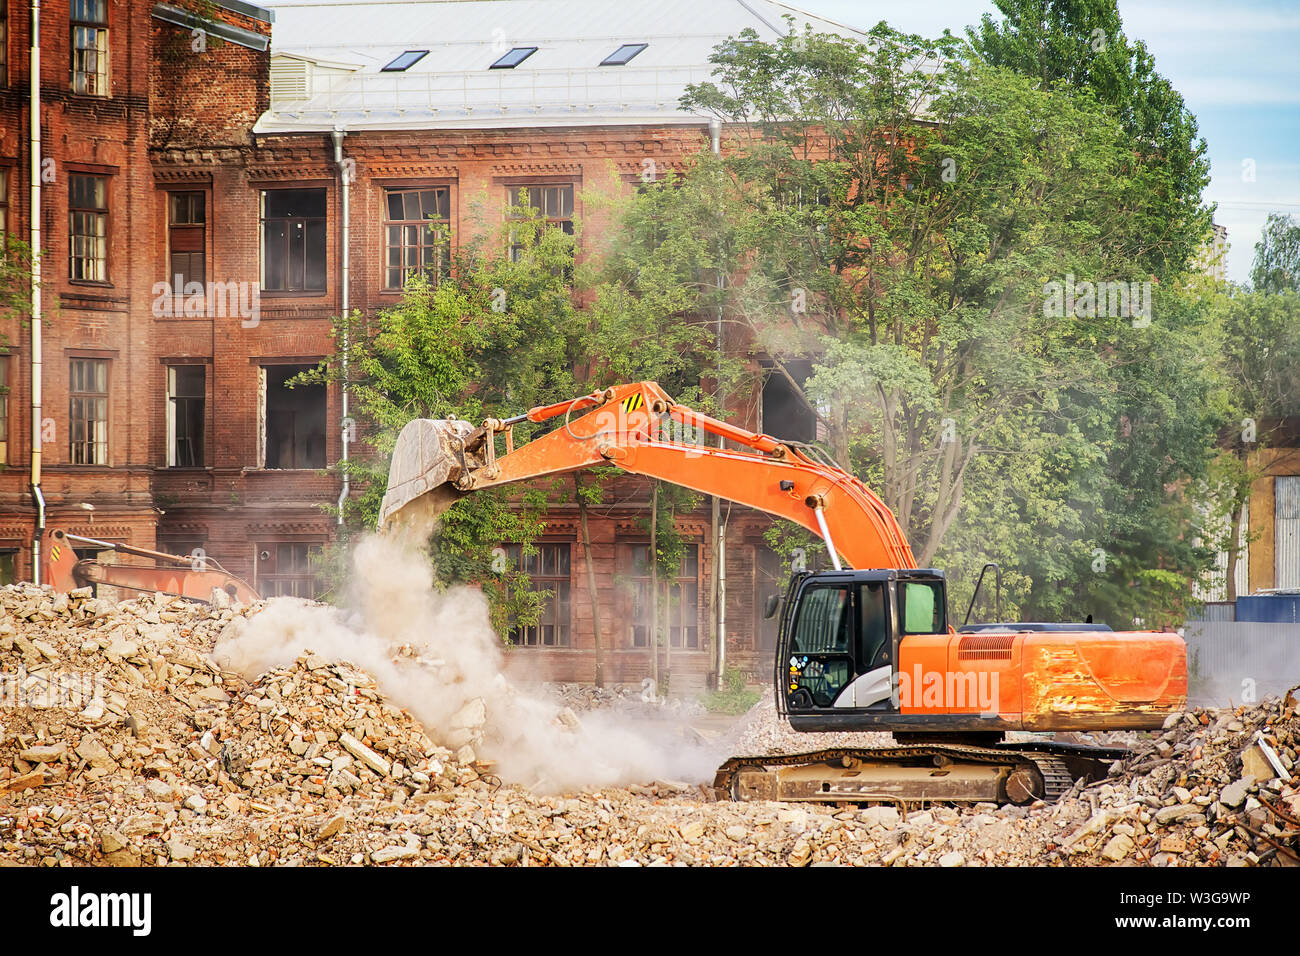 Orange excavator working on the ruins of a demolished building. Cleaning the rubble, building demolition and clearing site theme image - Stock Image